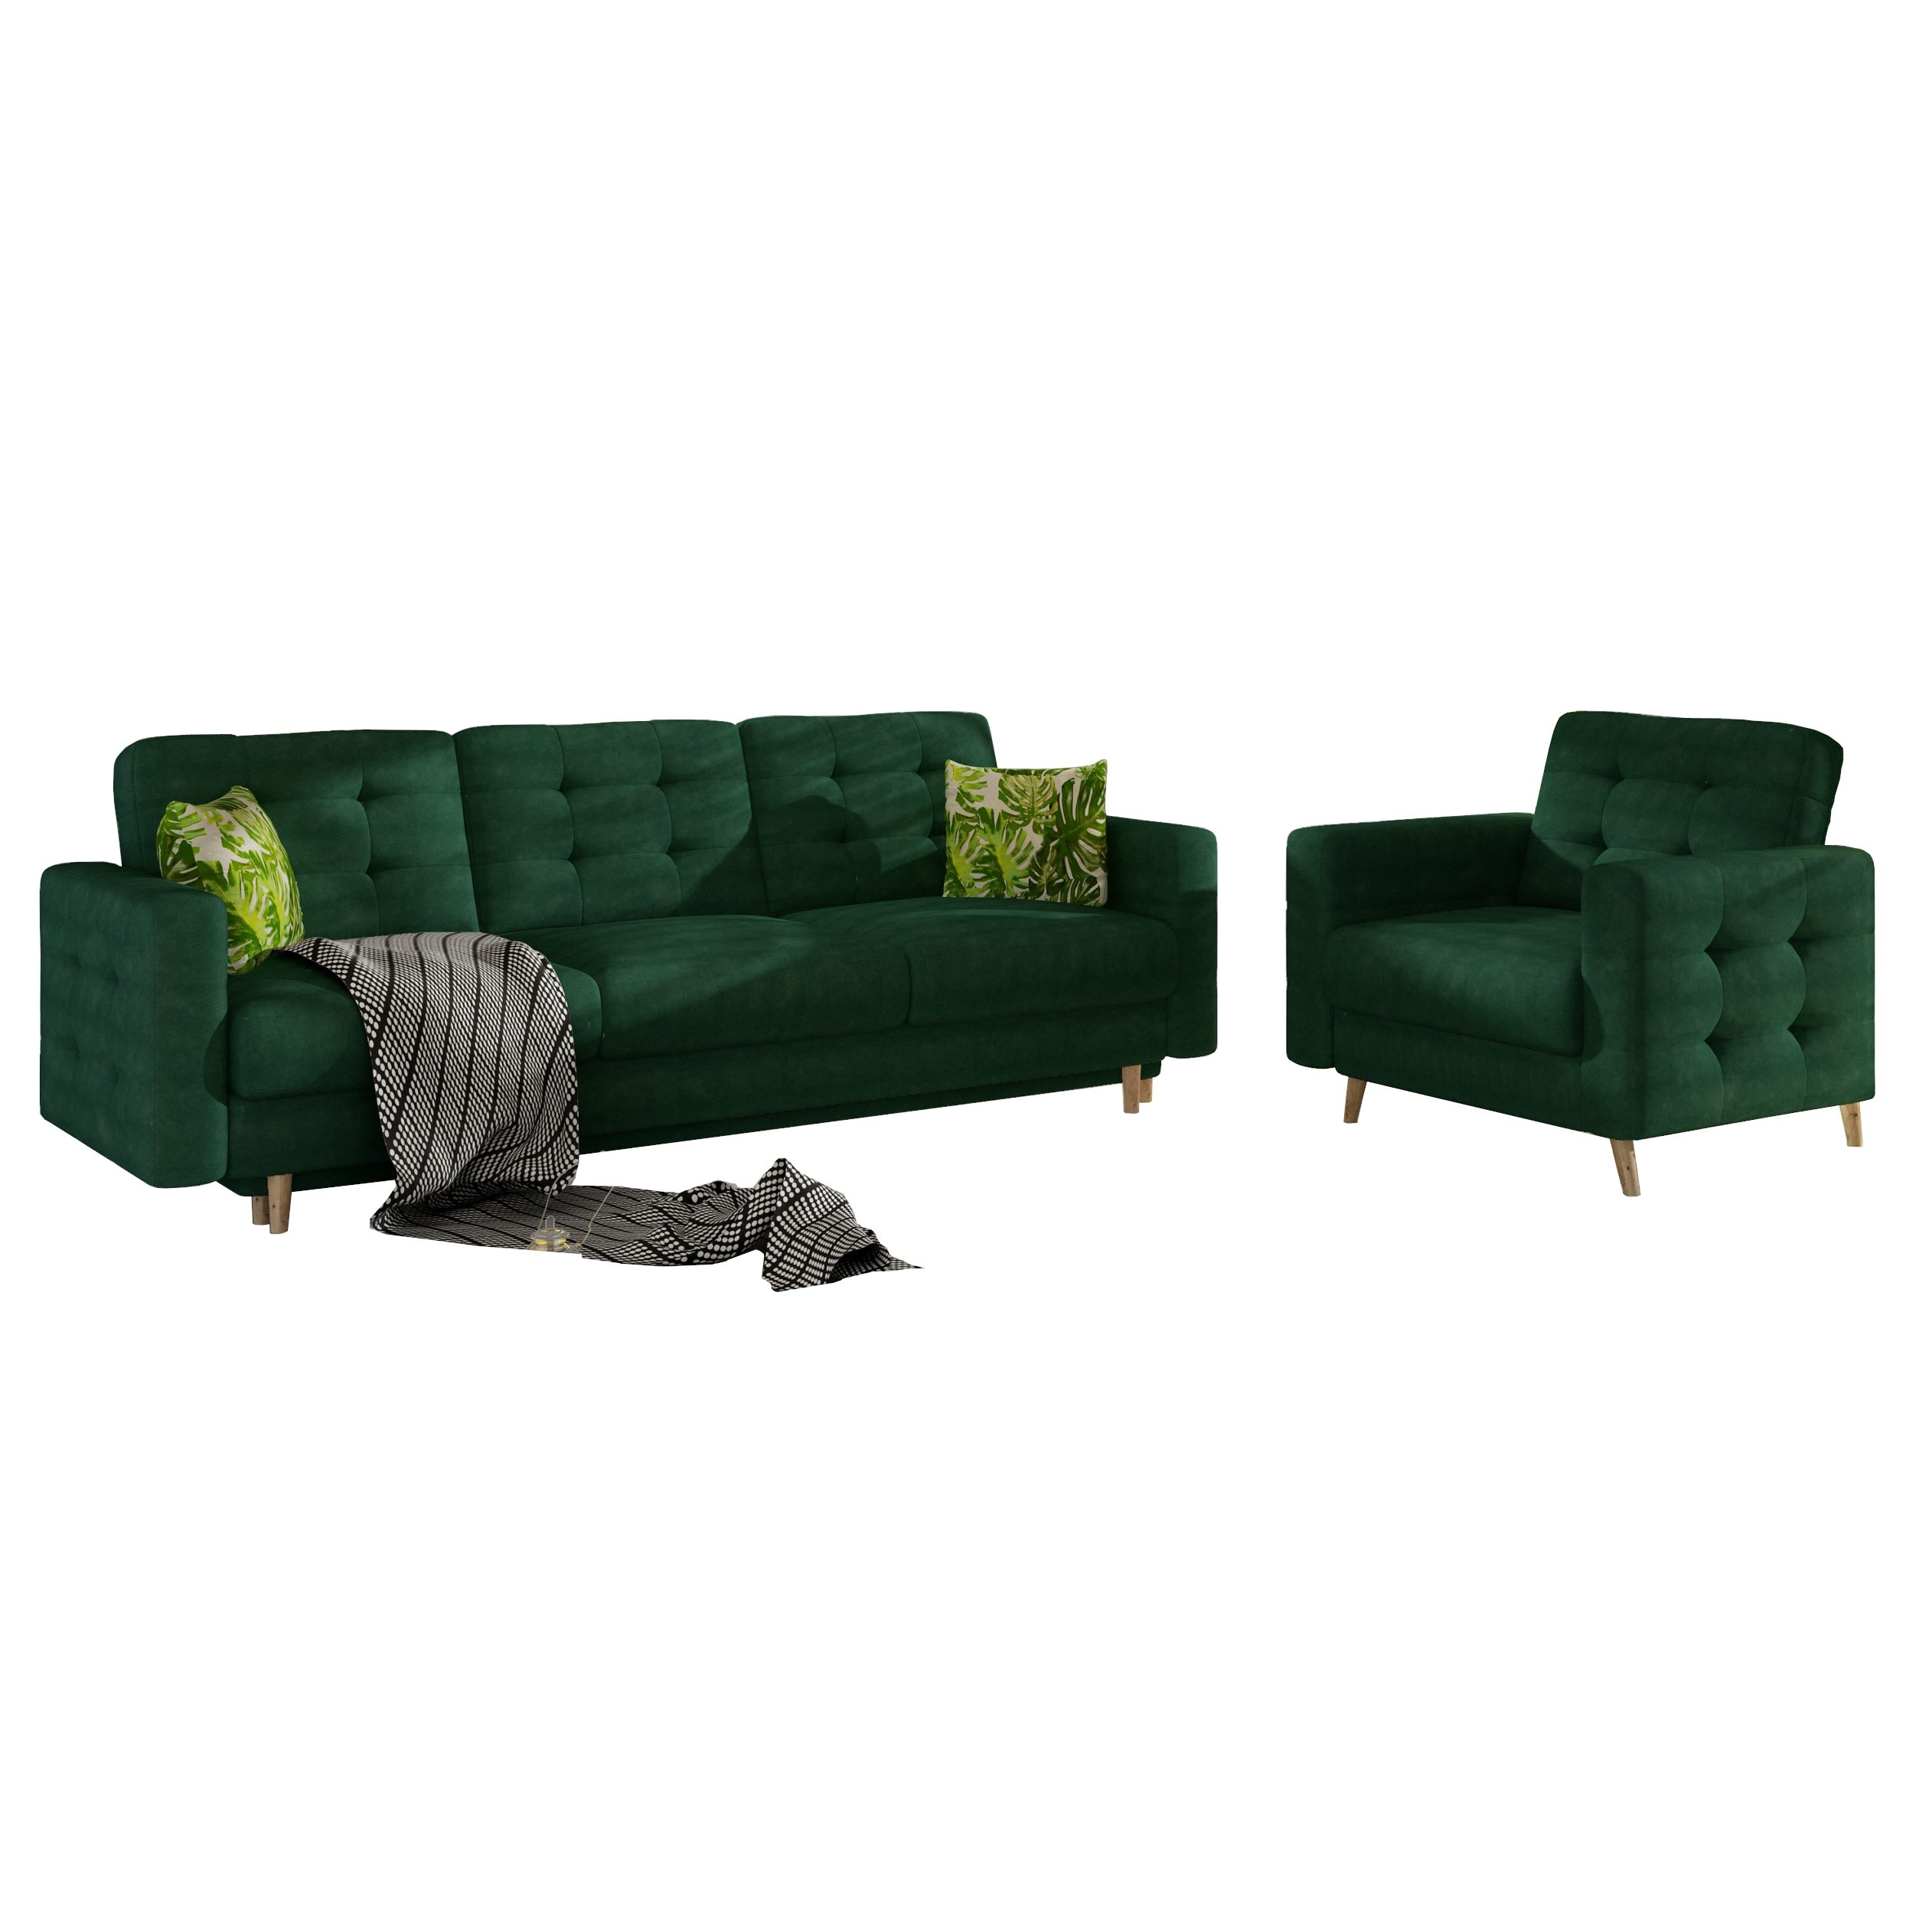 Couch Sessel Wohnlandschaft Sofa Sessel Set Astor - Friderik.eu